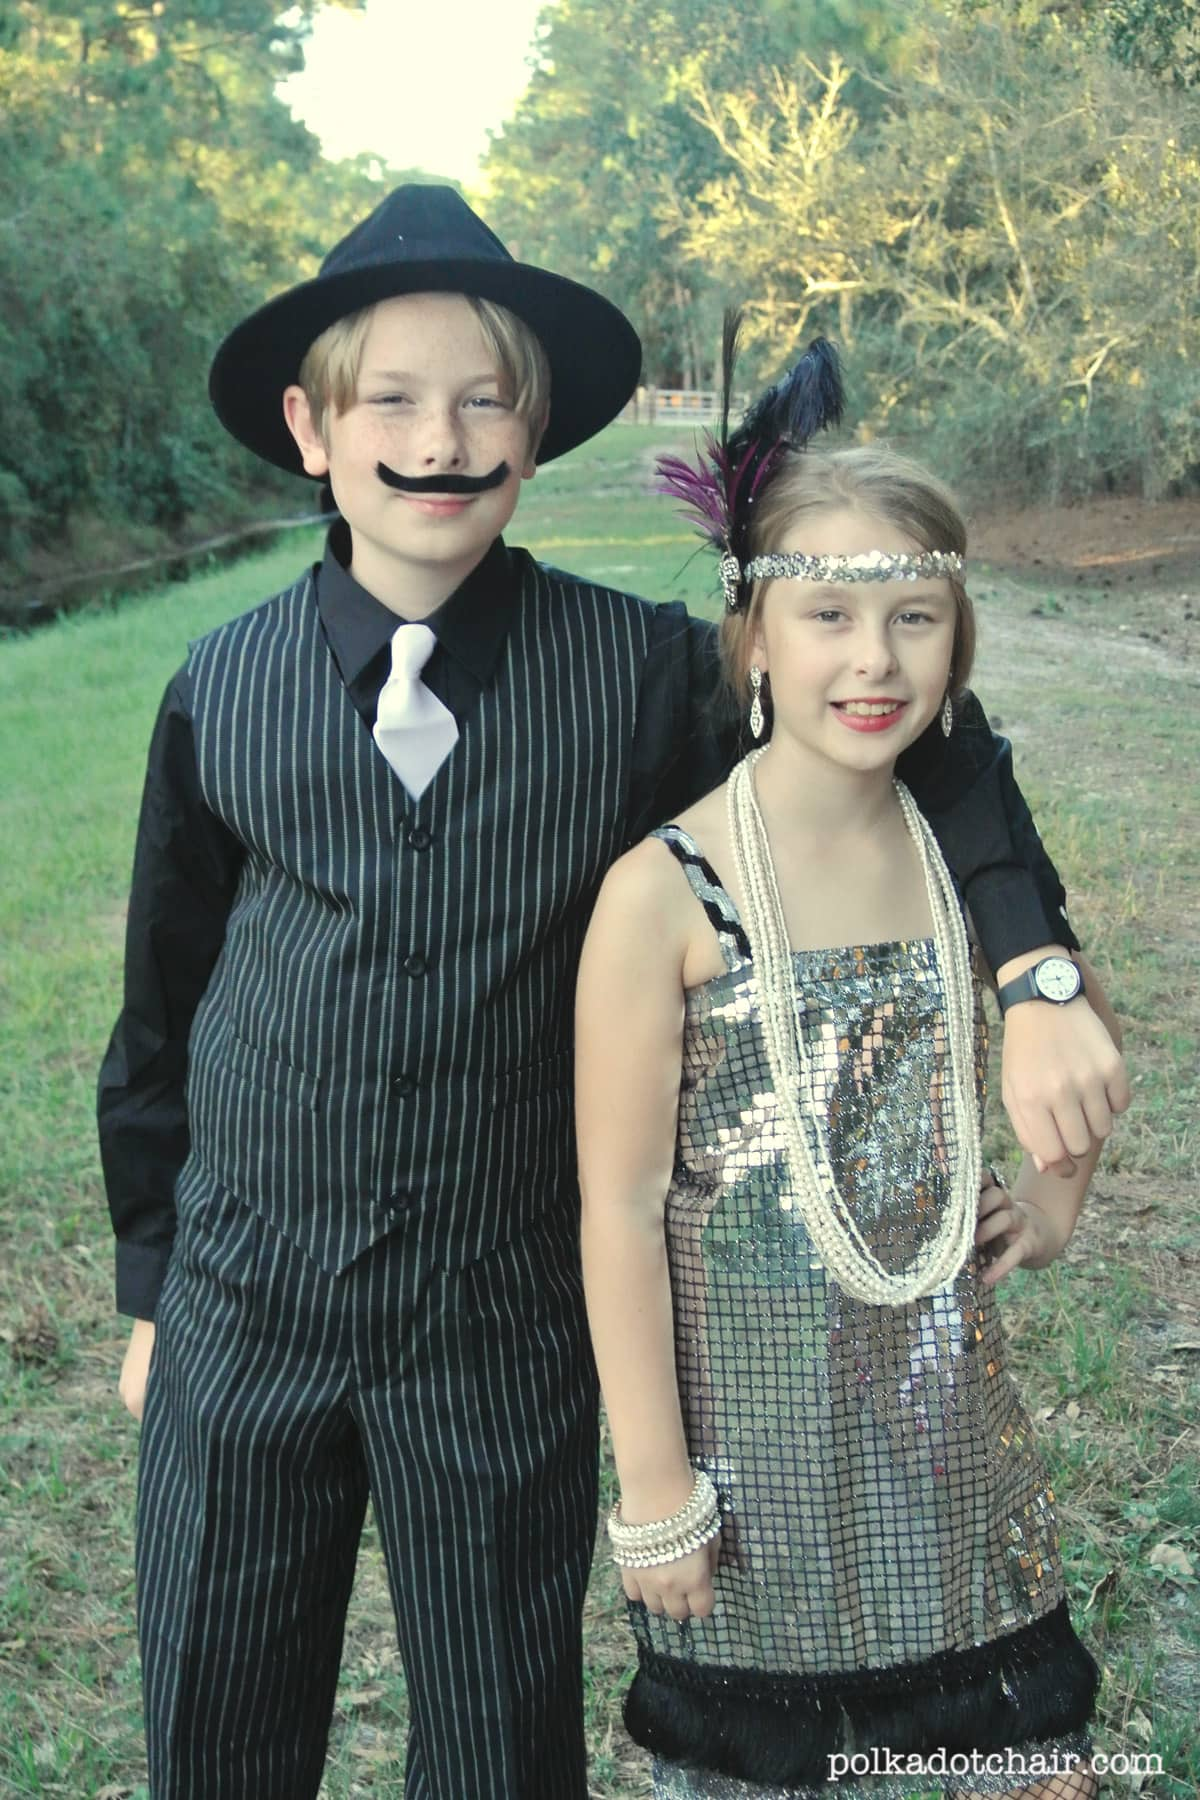 flapper halloween costume ideas and suggestions for what to wear to mickeys not so scary halloween